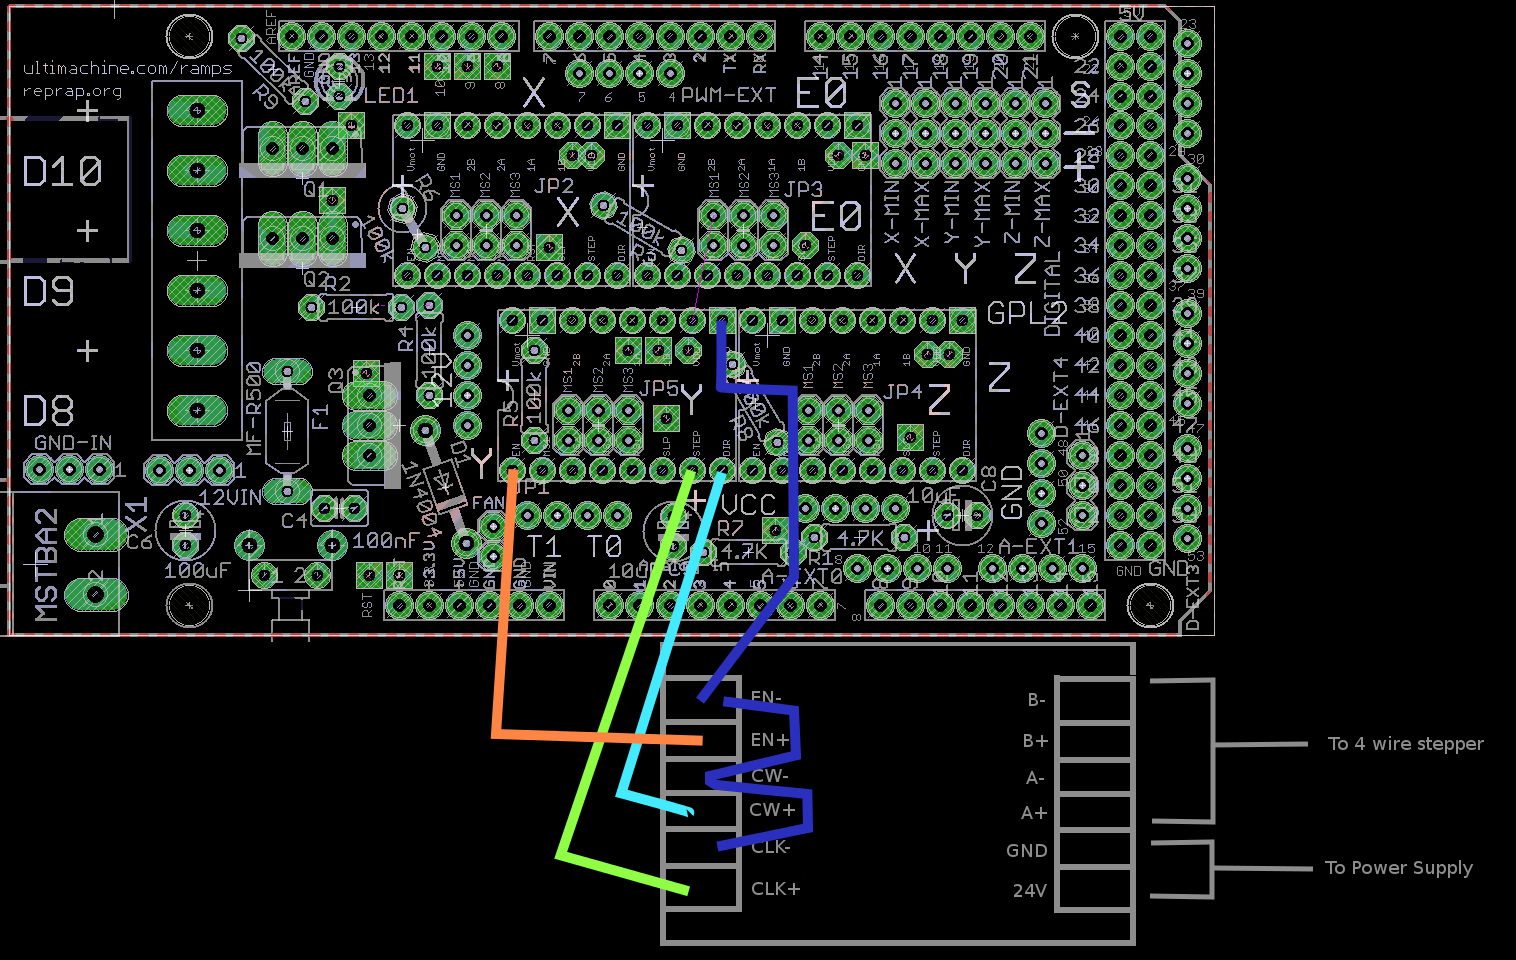 Aem Fic Micra Ecu Pin Outs besides Dm likewise Atmel Atmega Atmega Usb Programmer Zif Usbasp besides Diagramas De Flujo likewise Image Thumb. on pin socket diagram